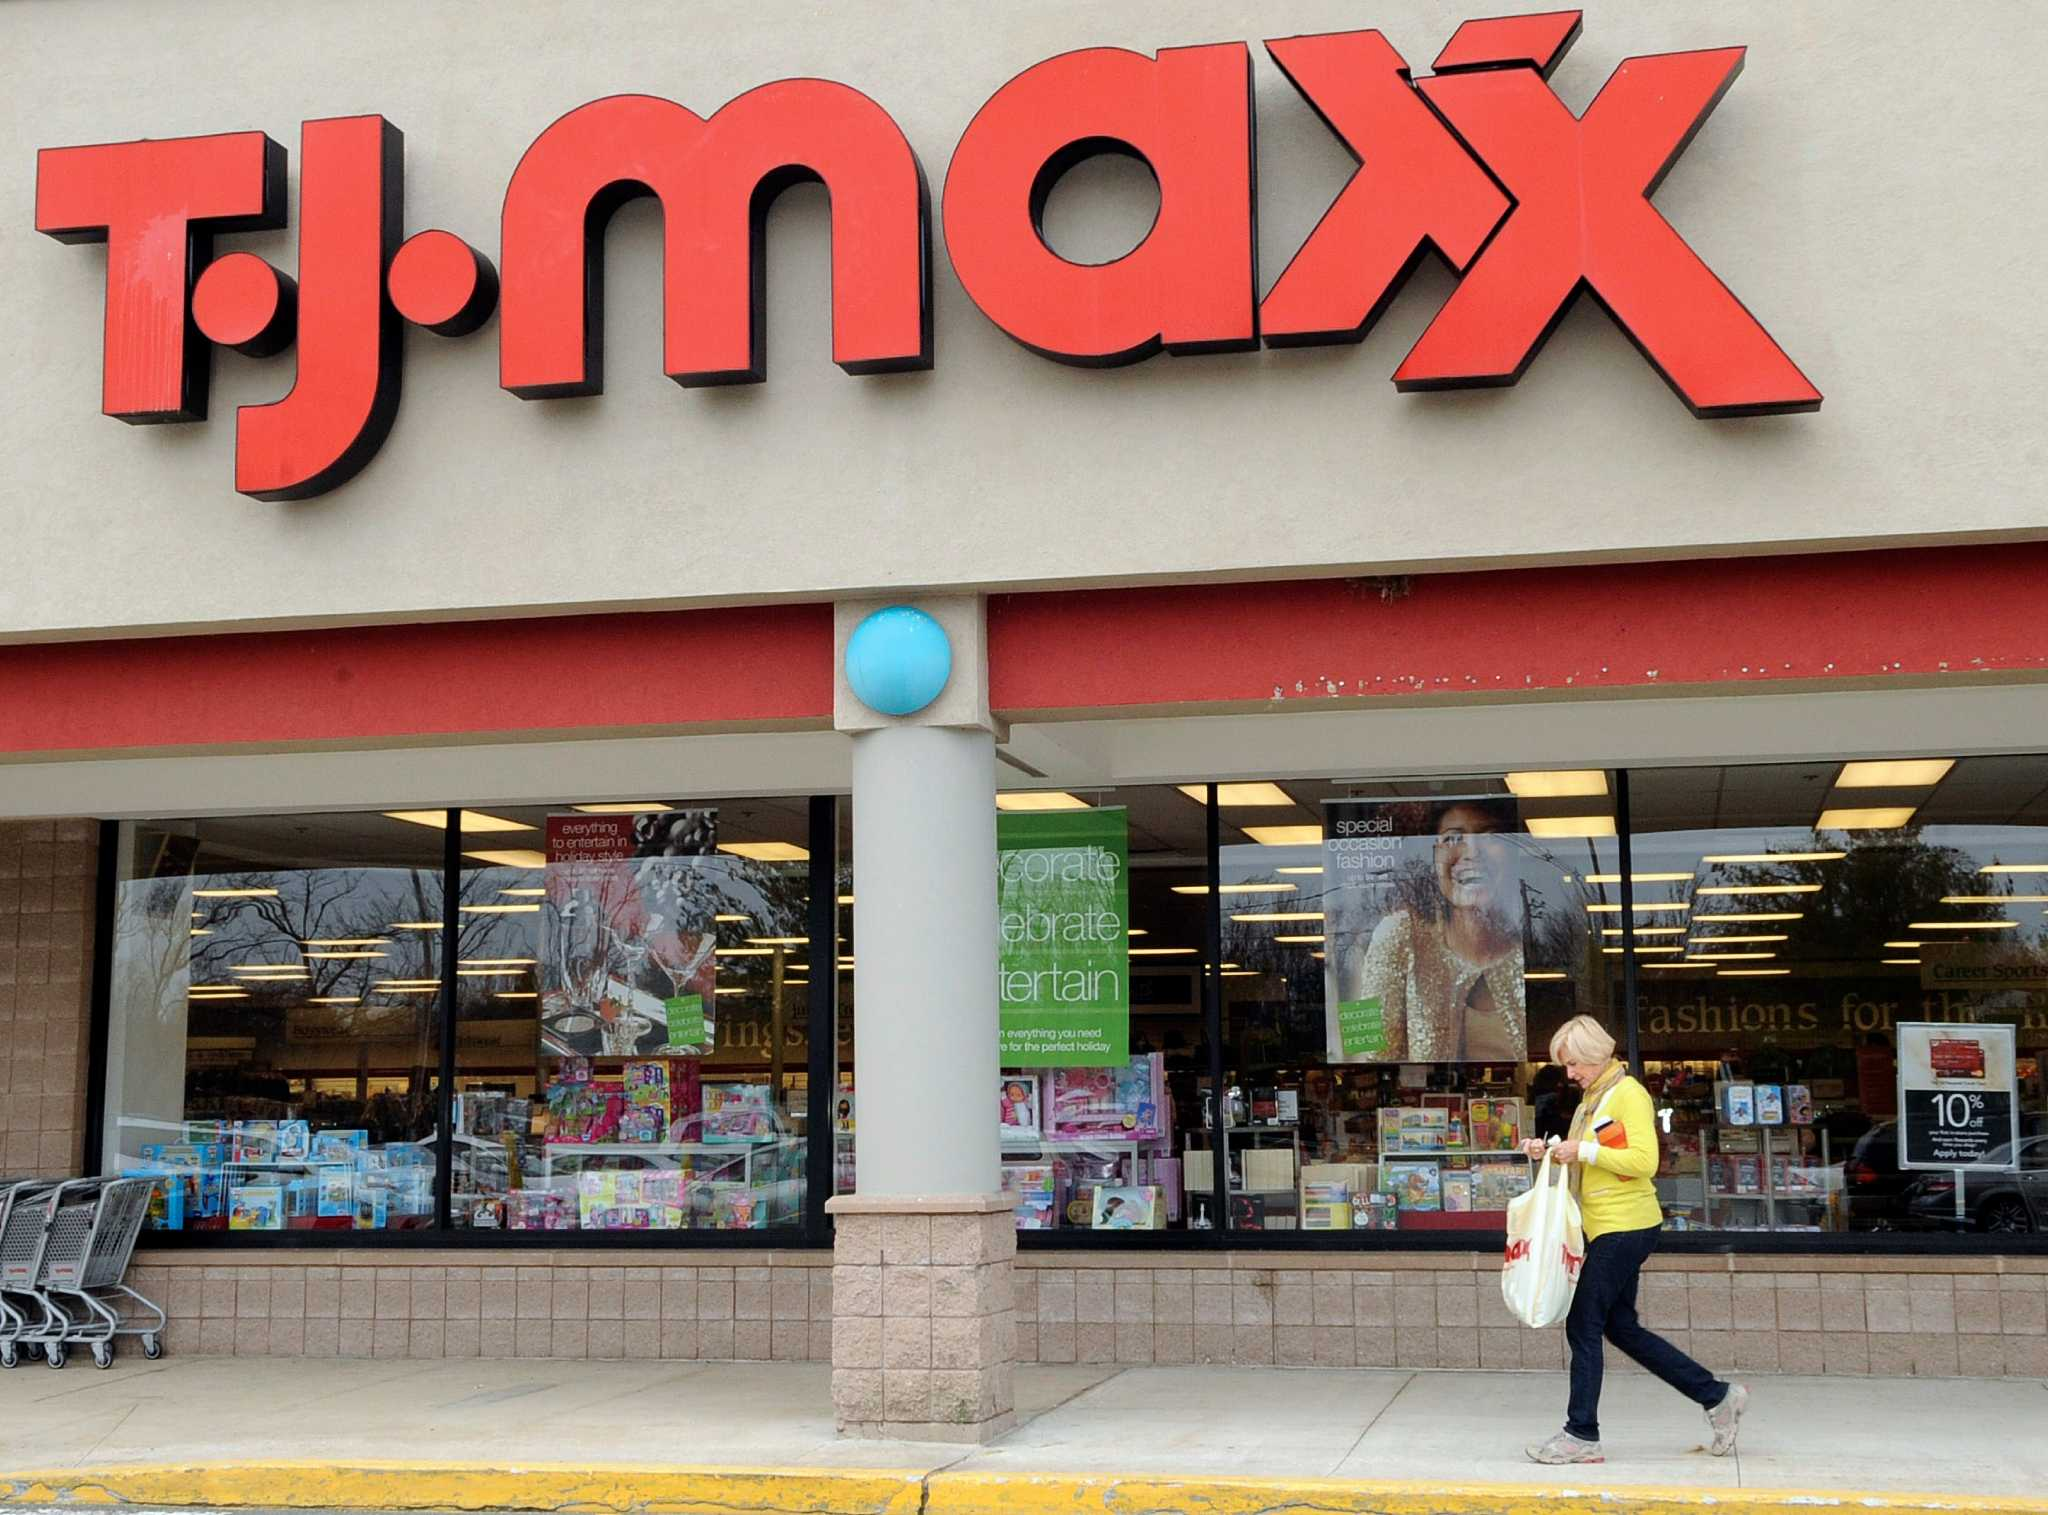 Report  More T J  Maxx and Marshalls stores coming to the U S    San  Antonio Express News. Report  More T J  Maxx and Marshalls stores coming to the U S